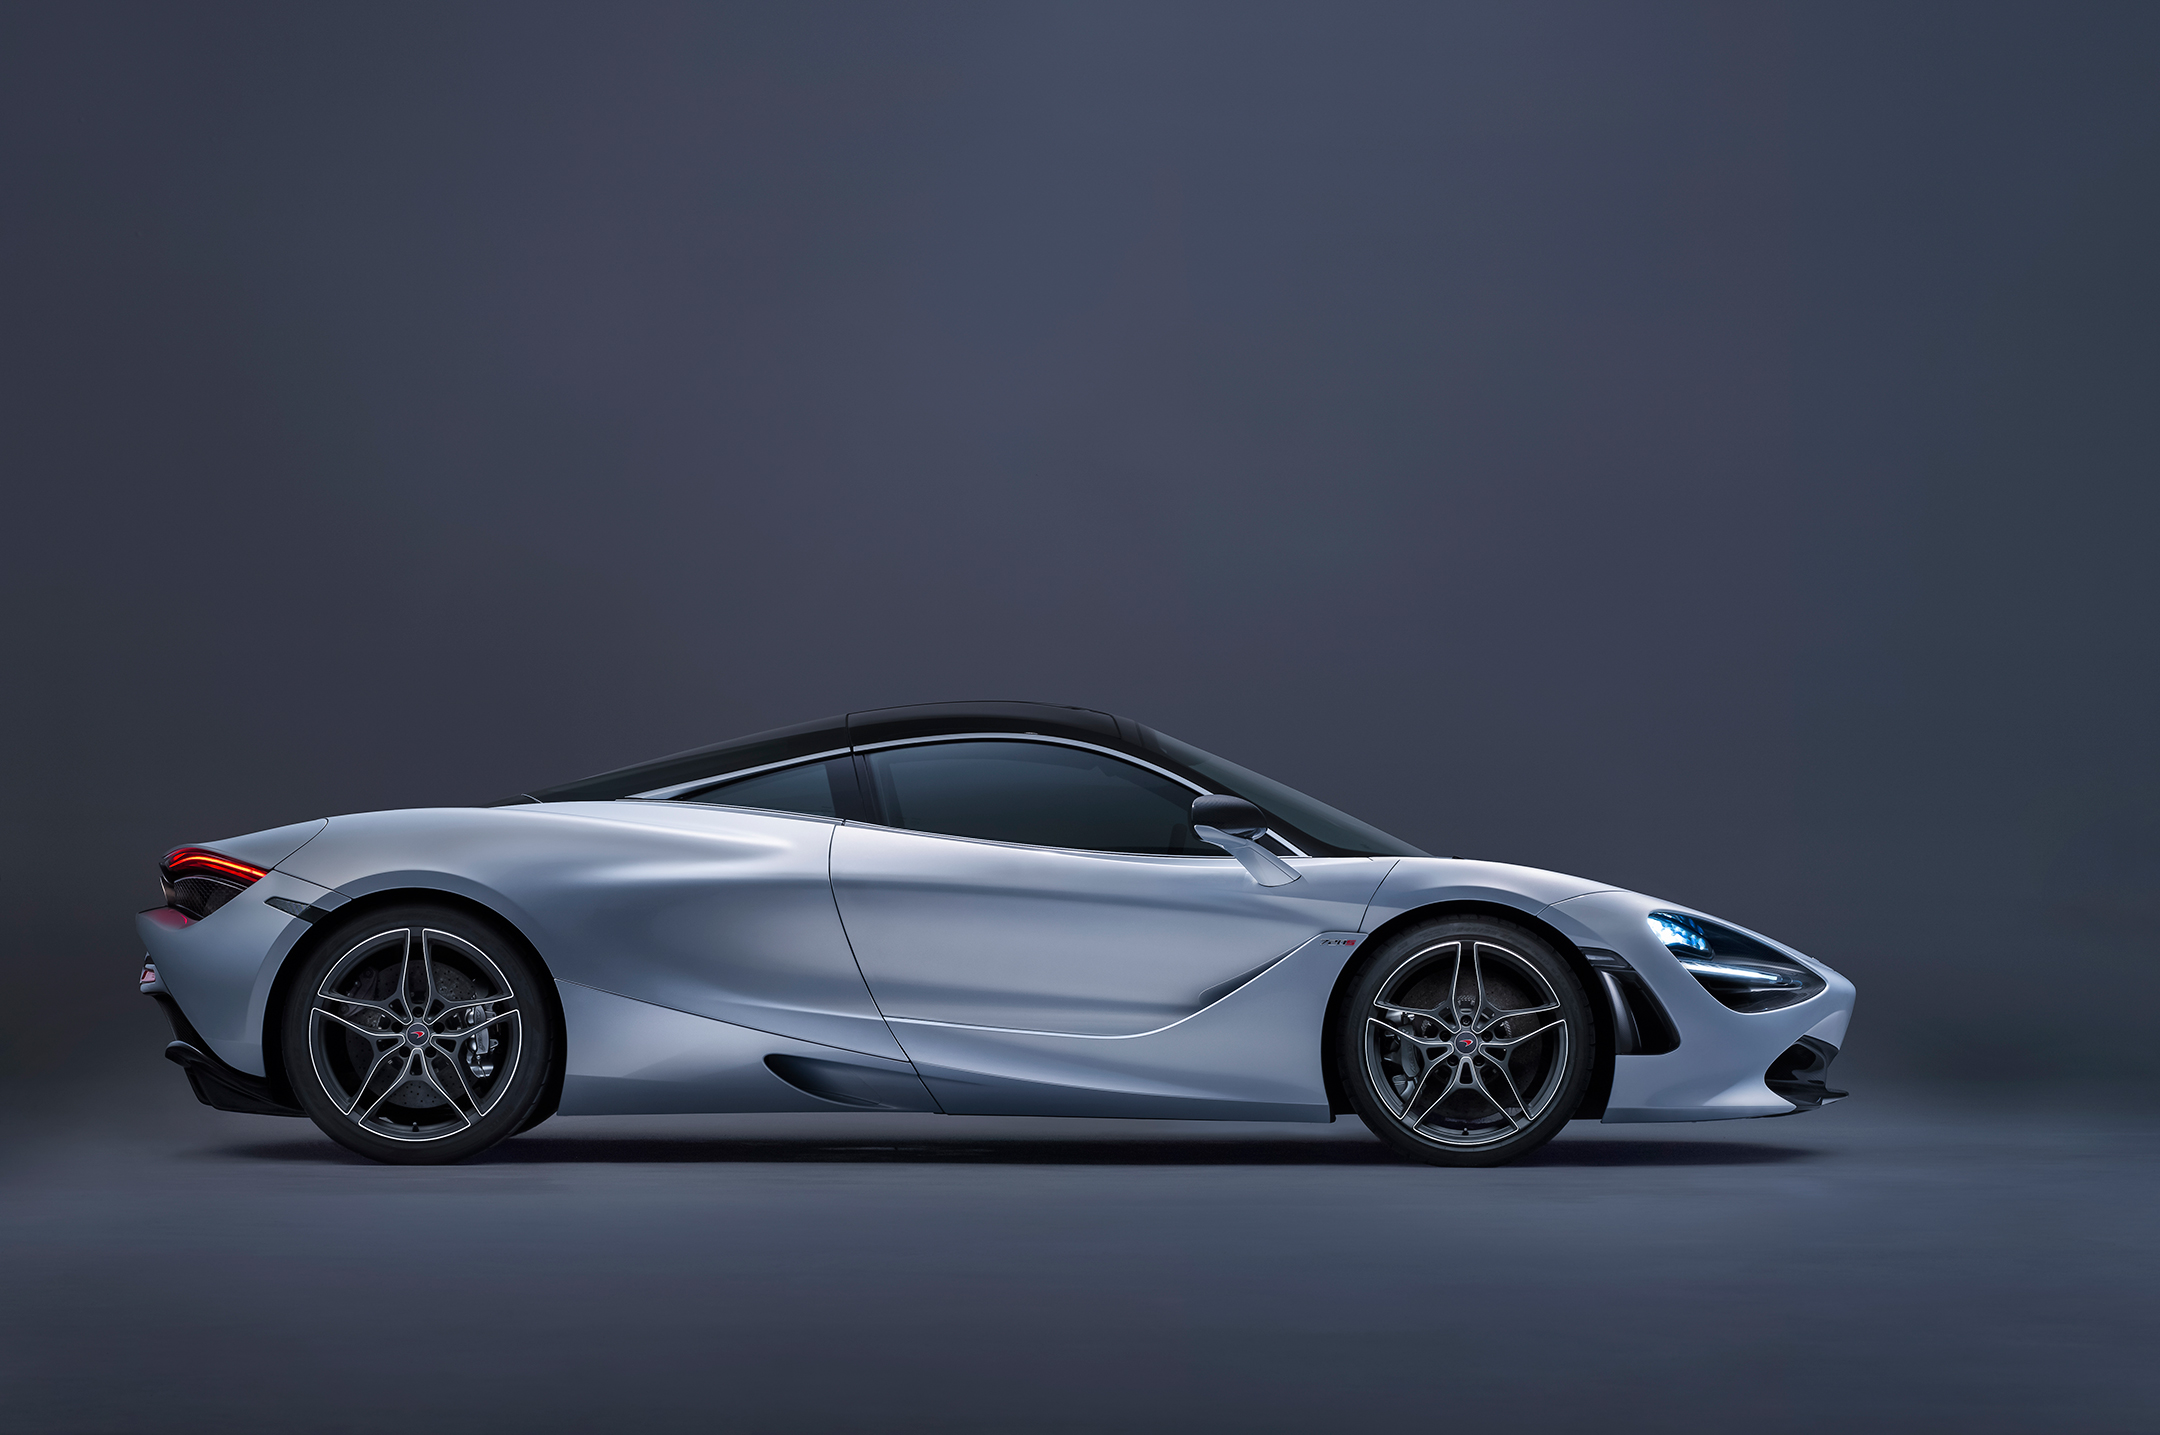 McLaren 720S - 2017 - side-face / profil